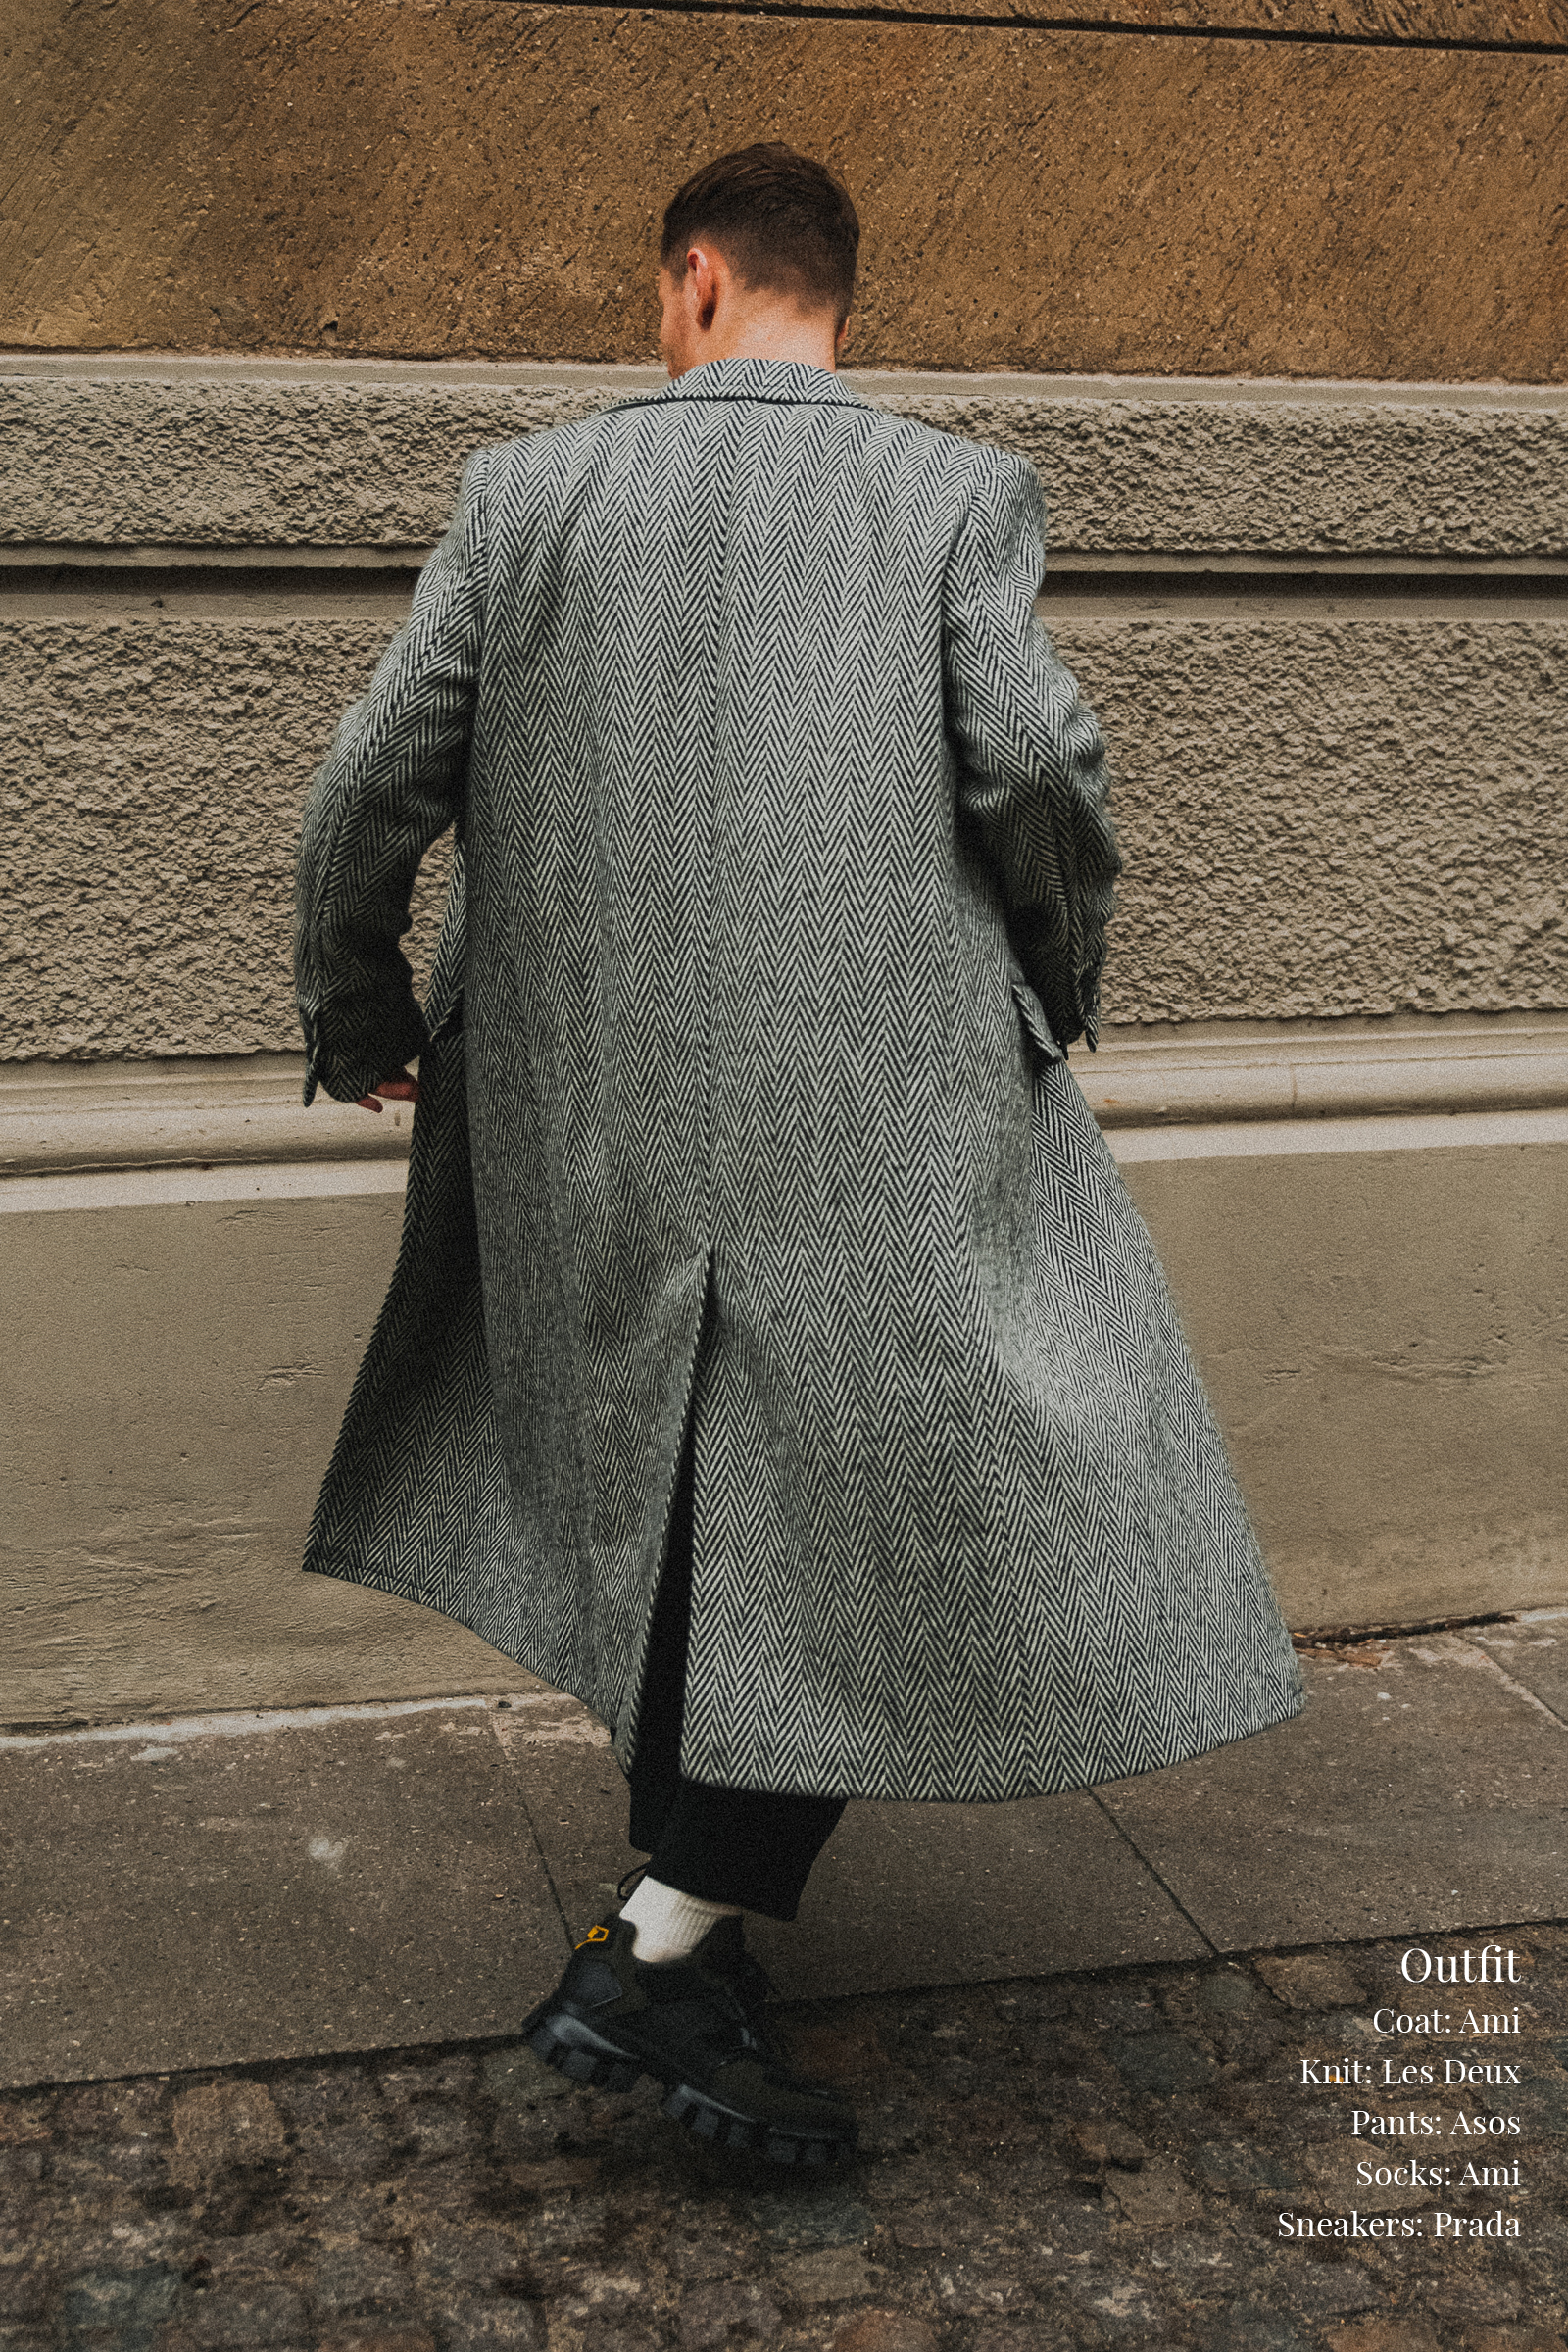 Parisian style inspiration for men and women. Man wearing oversized herringbone double breasted coat and chunky sneakers